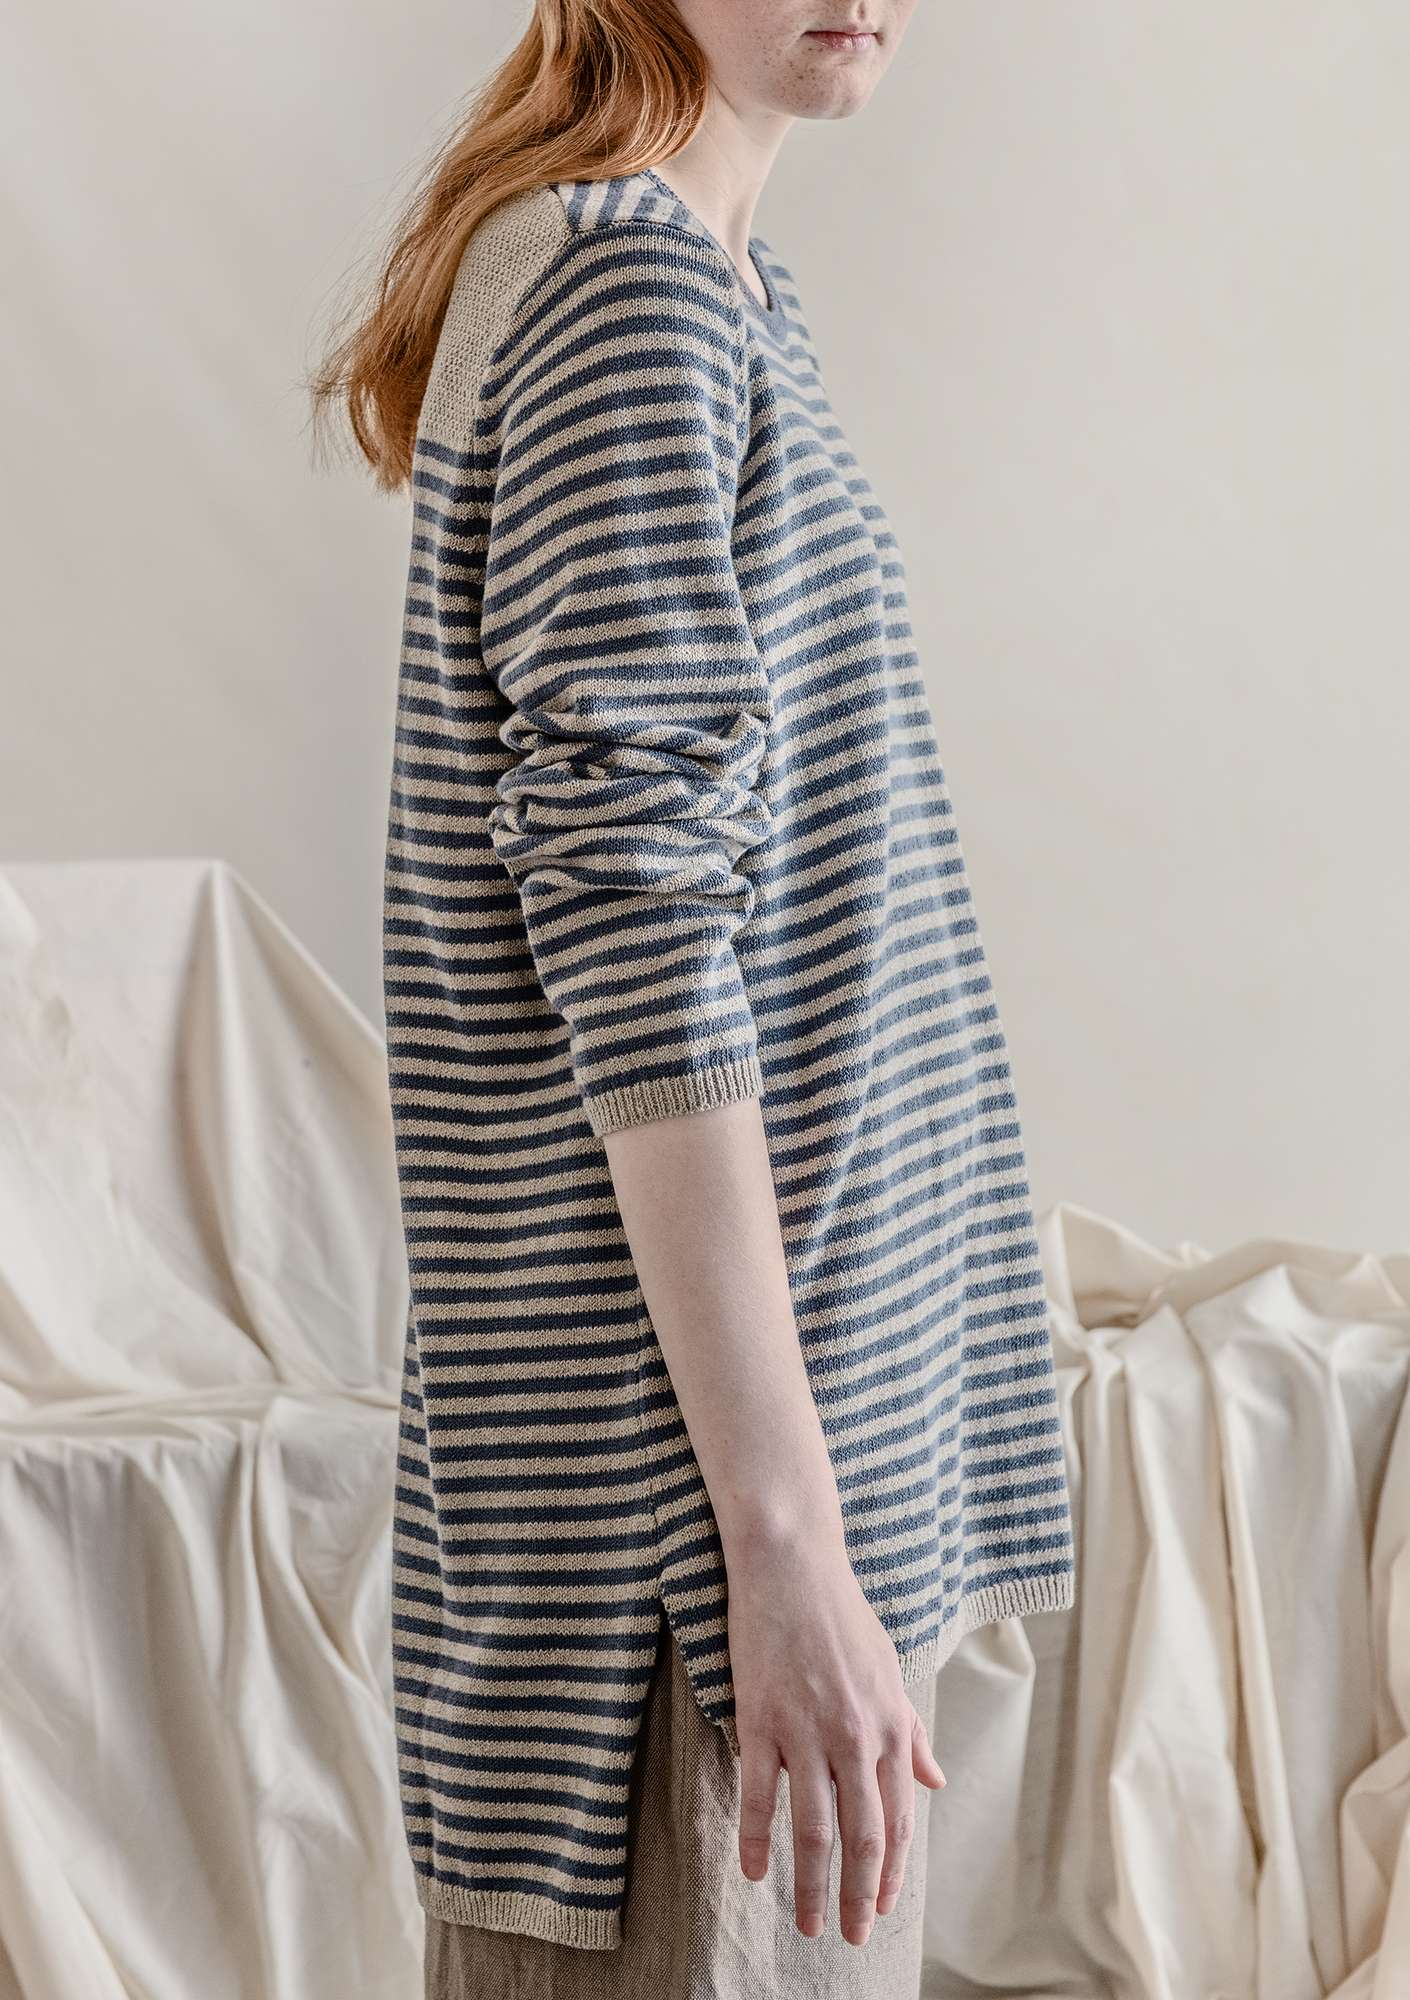 Striped-knit organic cotton sweater mist blue